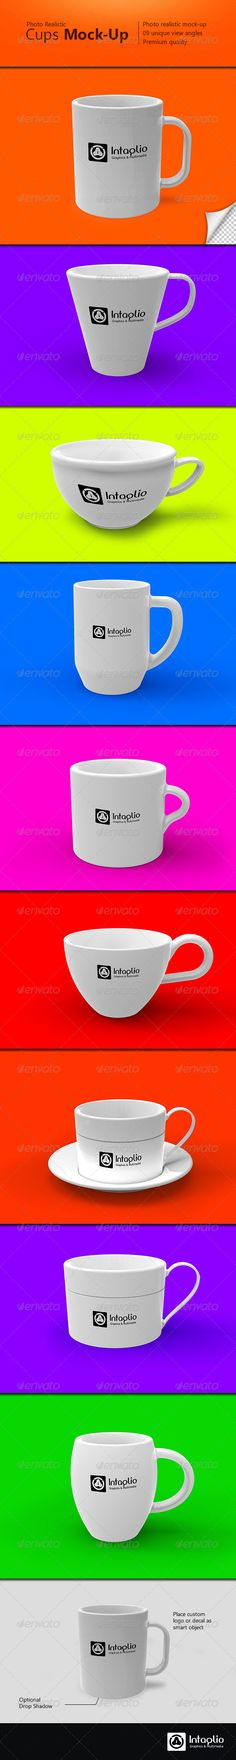 Photo-realistic Cups Mock-Up -  mudi on graphicriver, $5